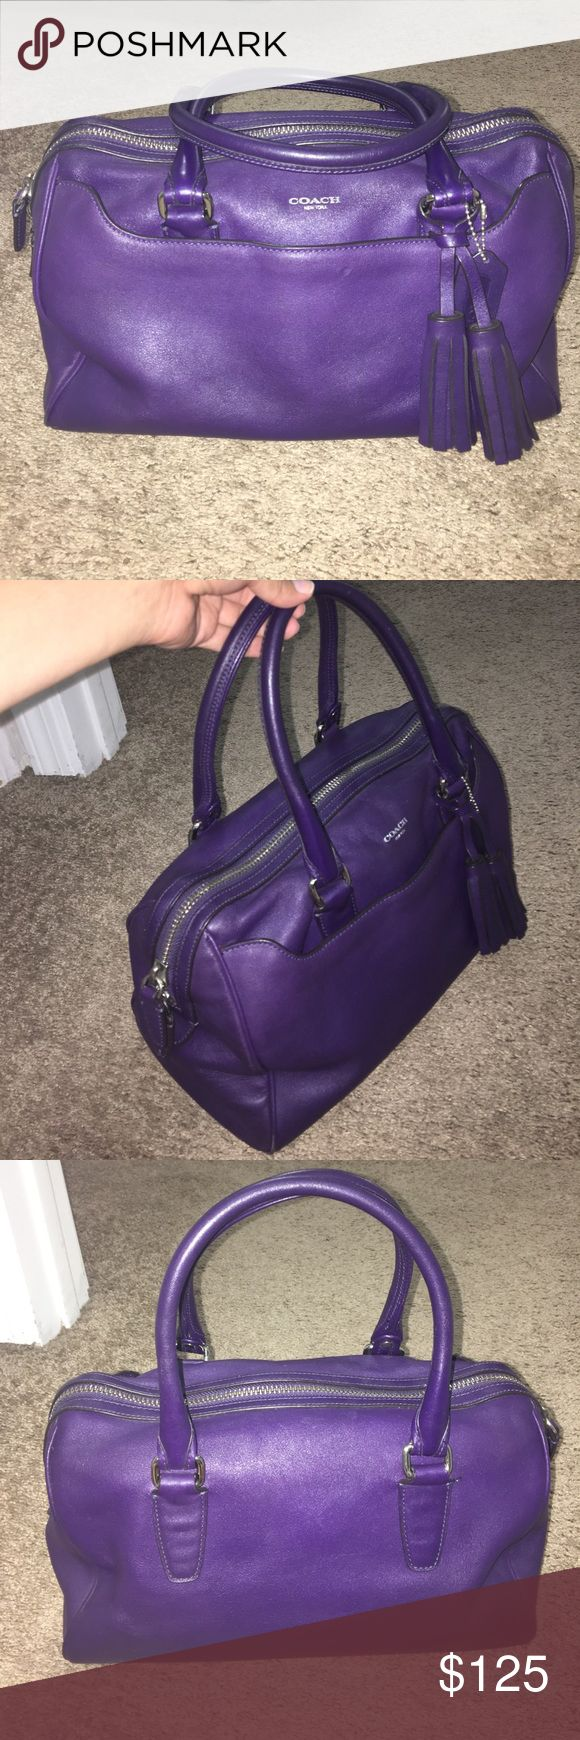 Purple / Eggplant Coach Legacy Haley bag Coach bag in the Legacy Haley style. This is a rare deep purple/eggplant color. Previously used and still in a great condition. I left a pink pen open and it left marks; see last picture. Selling for almost $200 on eBay! Coach Bags Satchels